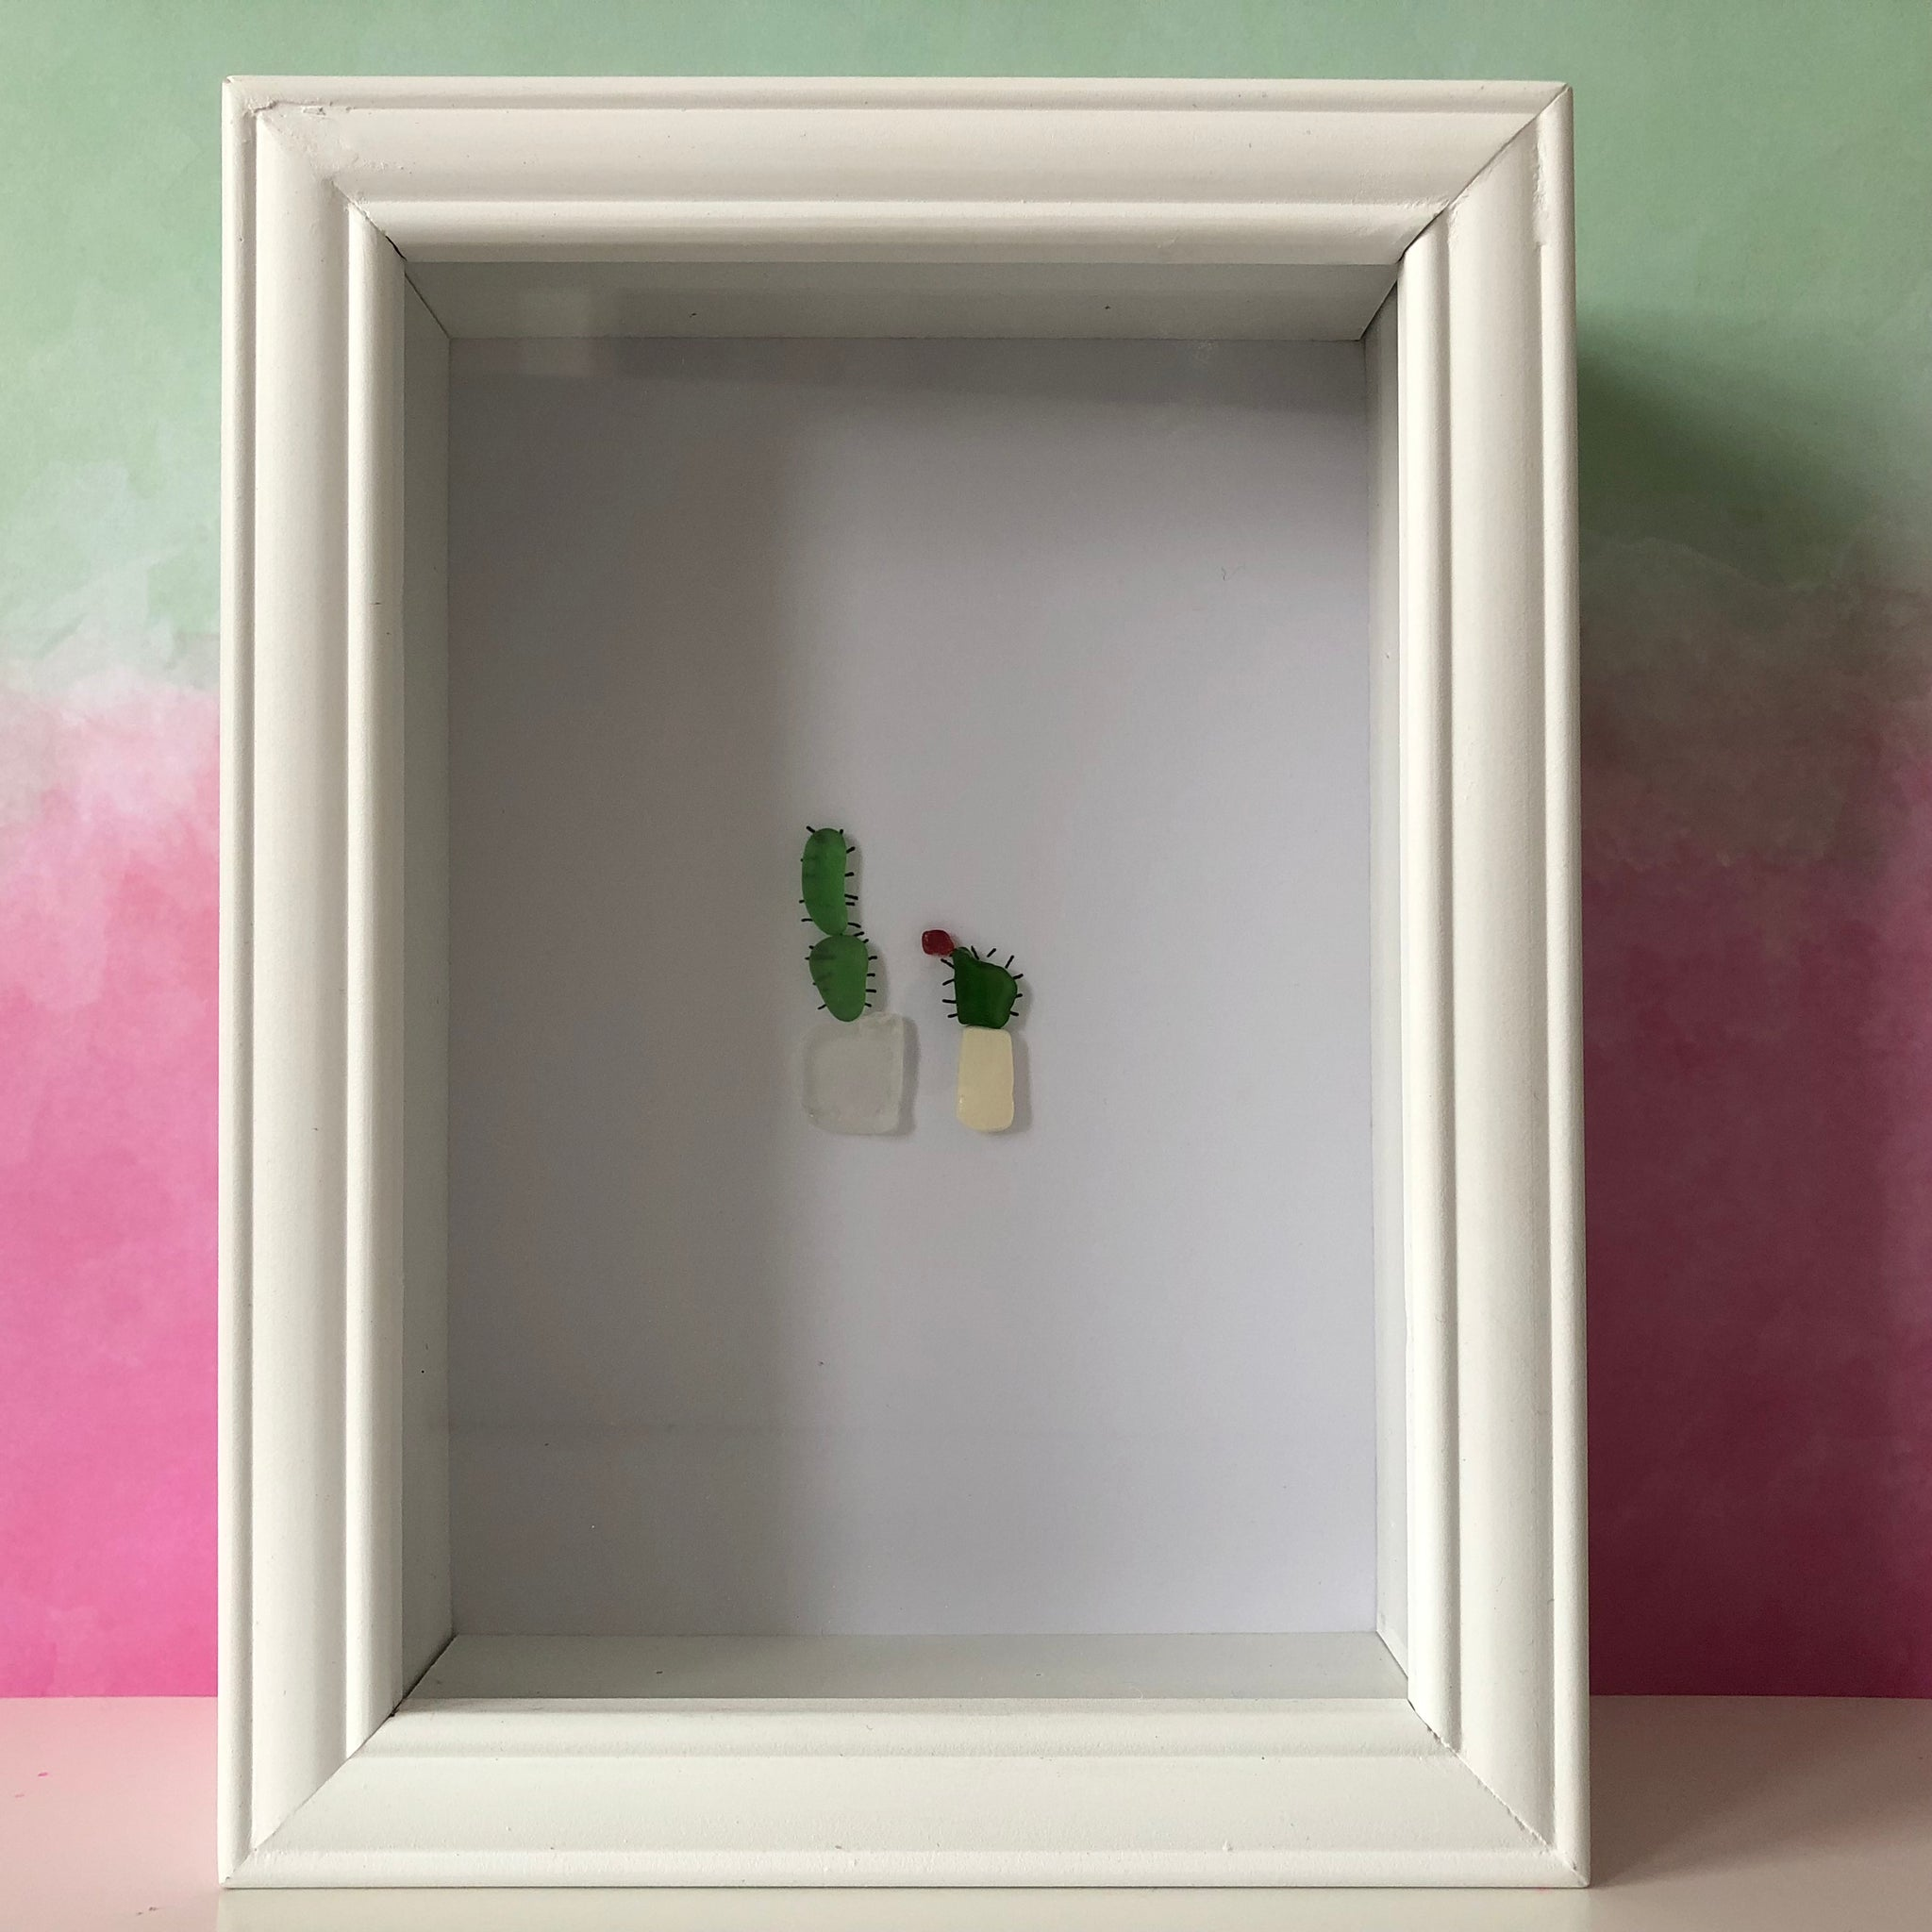 Flowering Cactus Plants Framed Seaglass Art